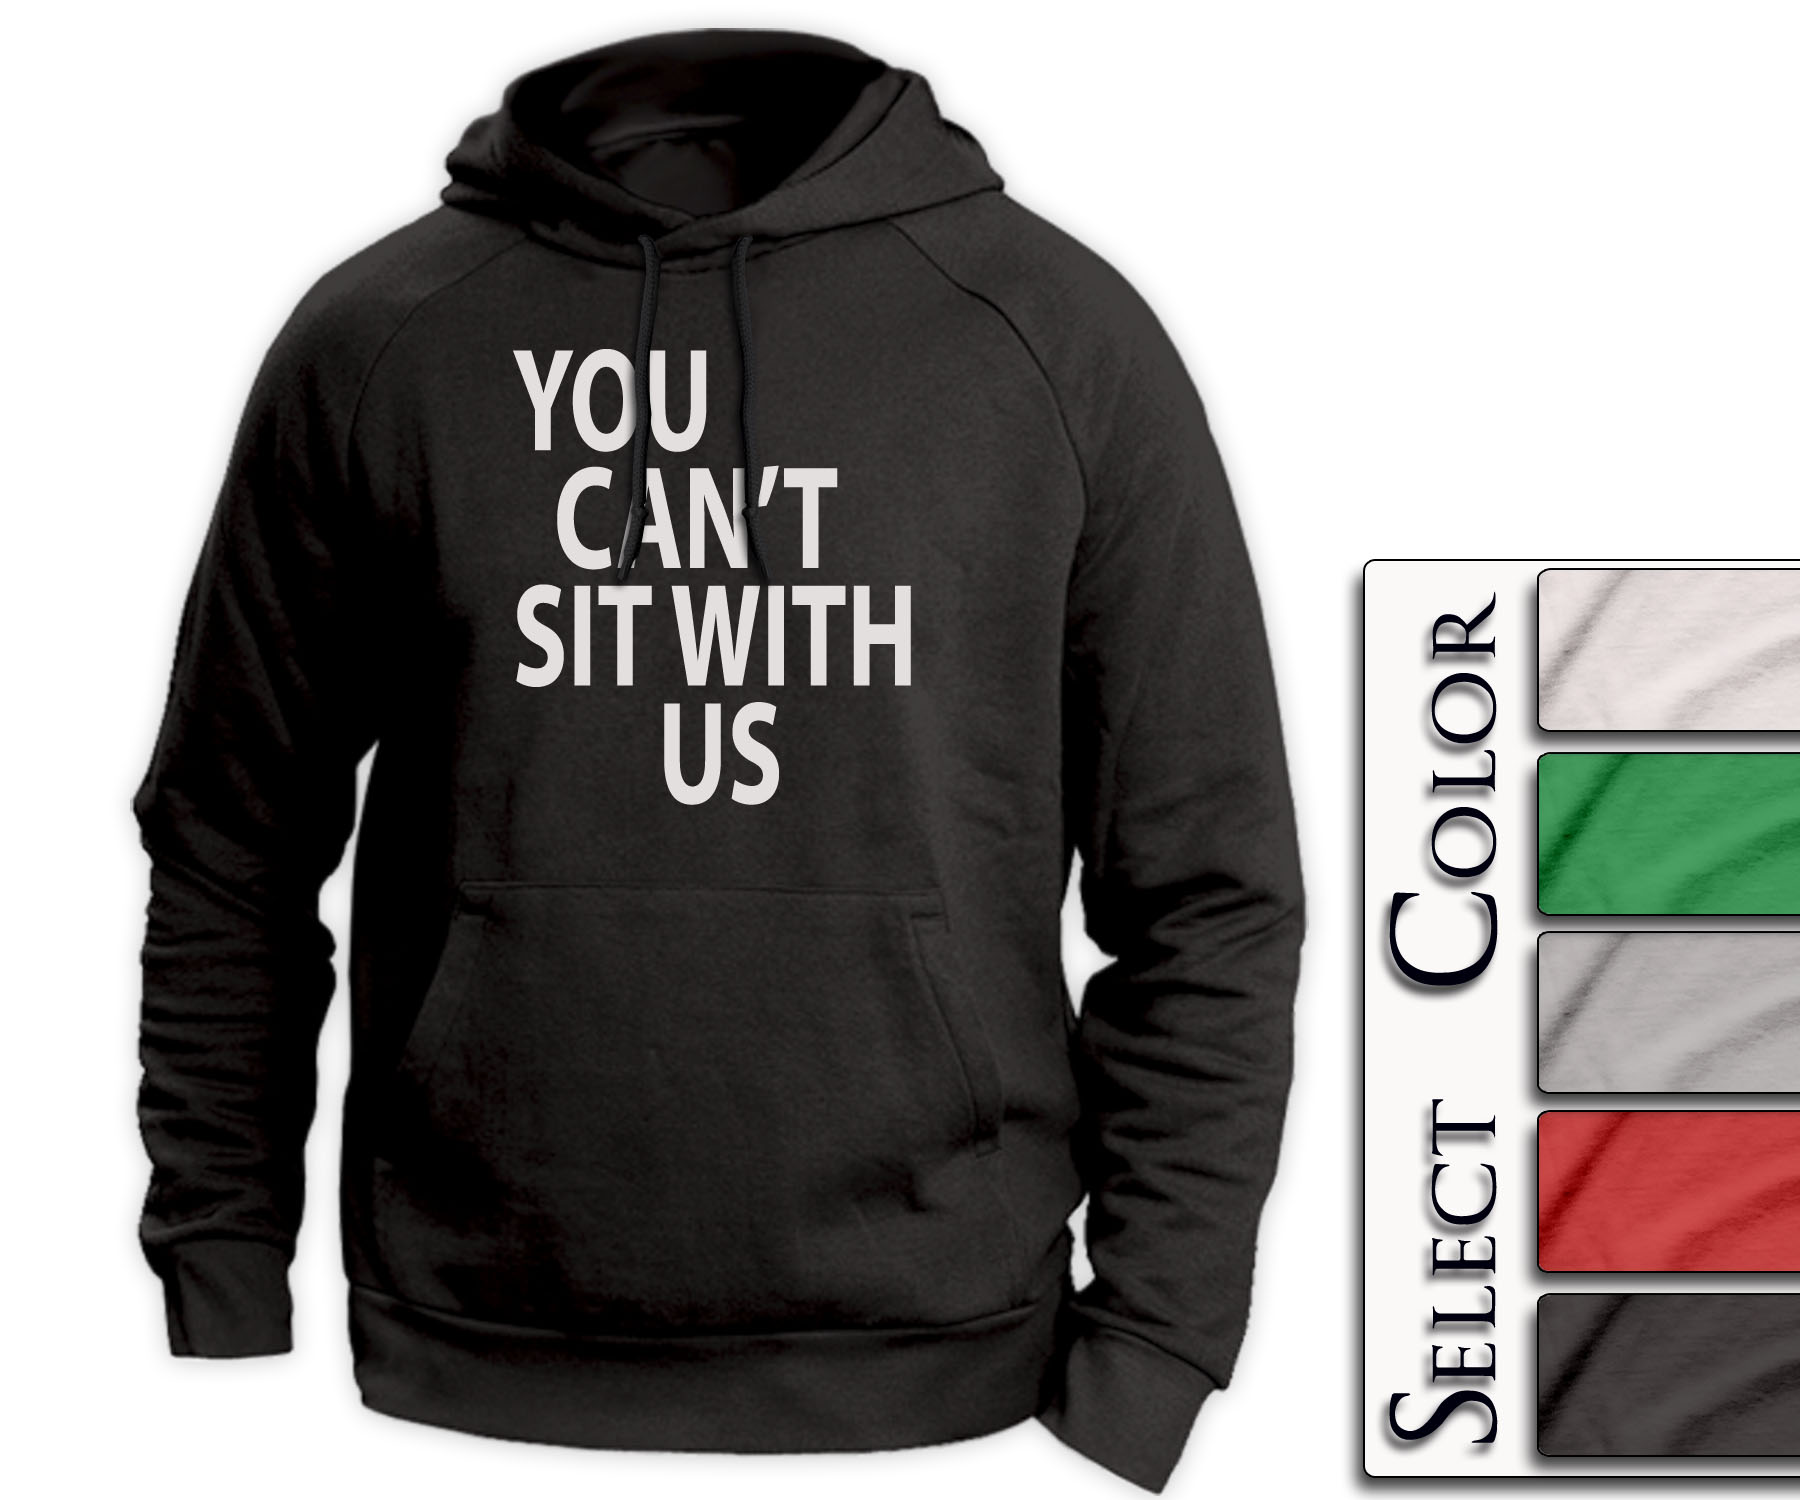 Mean Girls Hoodie - you can't sit with us tshirt mean kids lunch tee - A138